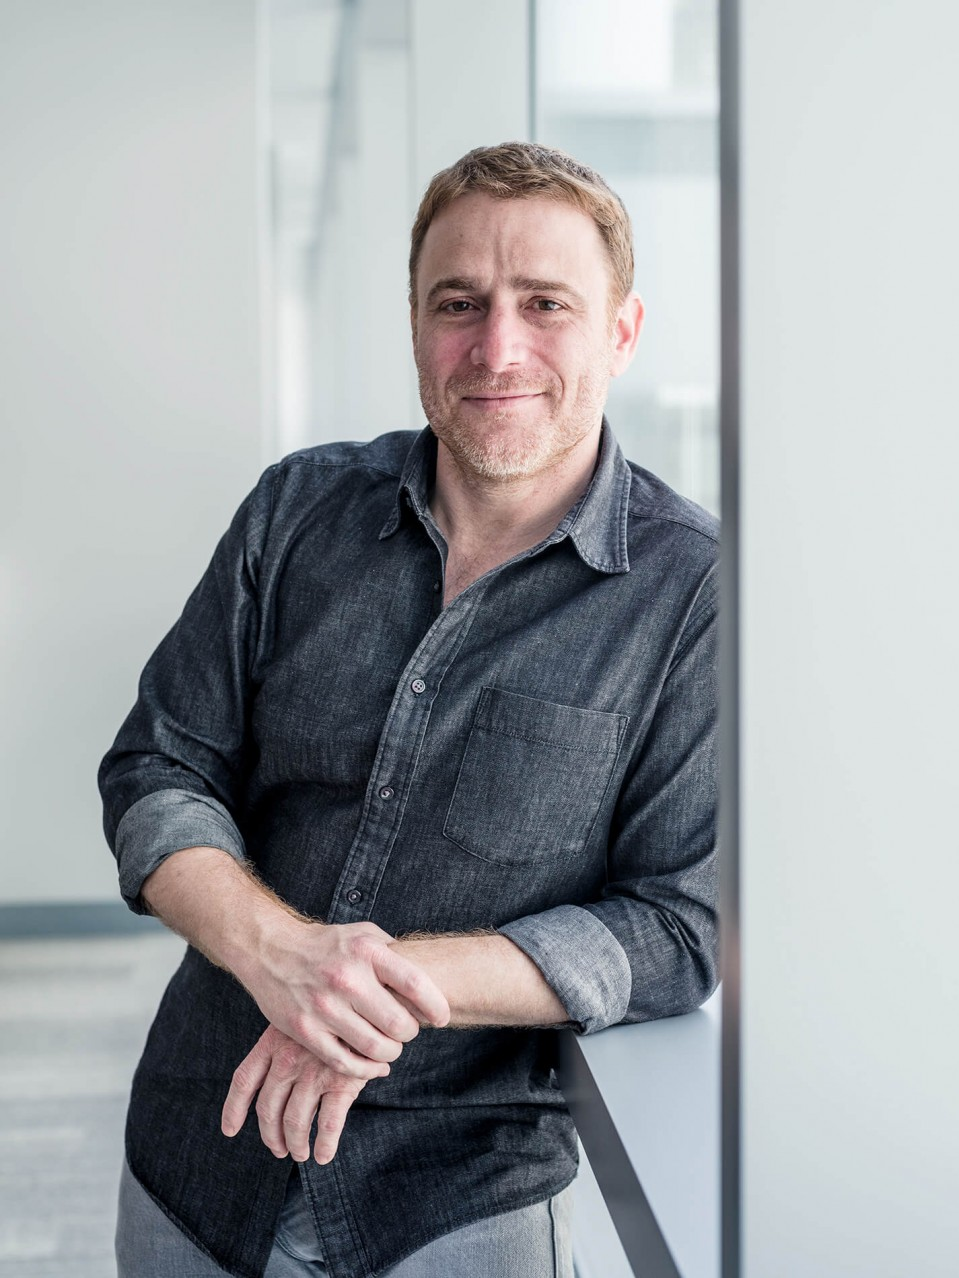 Slack CEO: How We'll Use AI to Reduce Information Overload